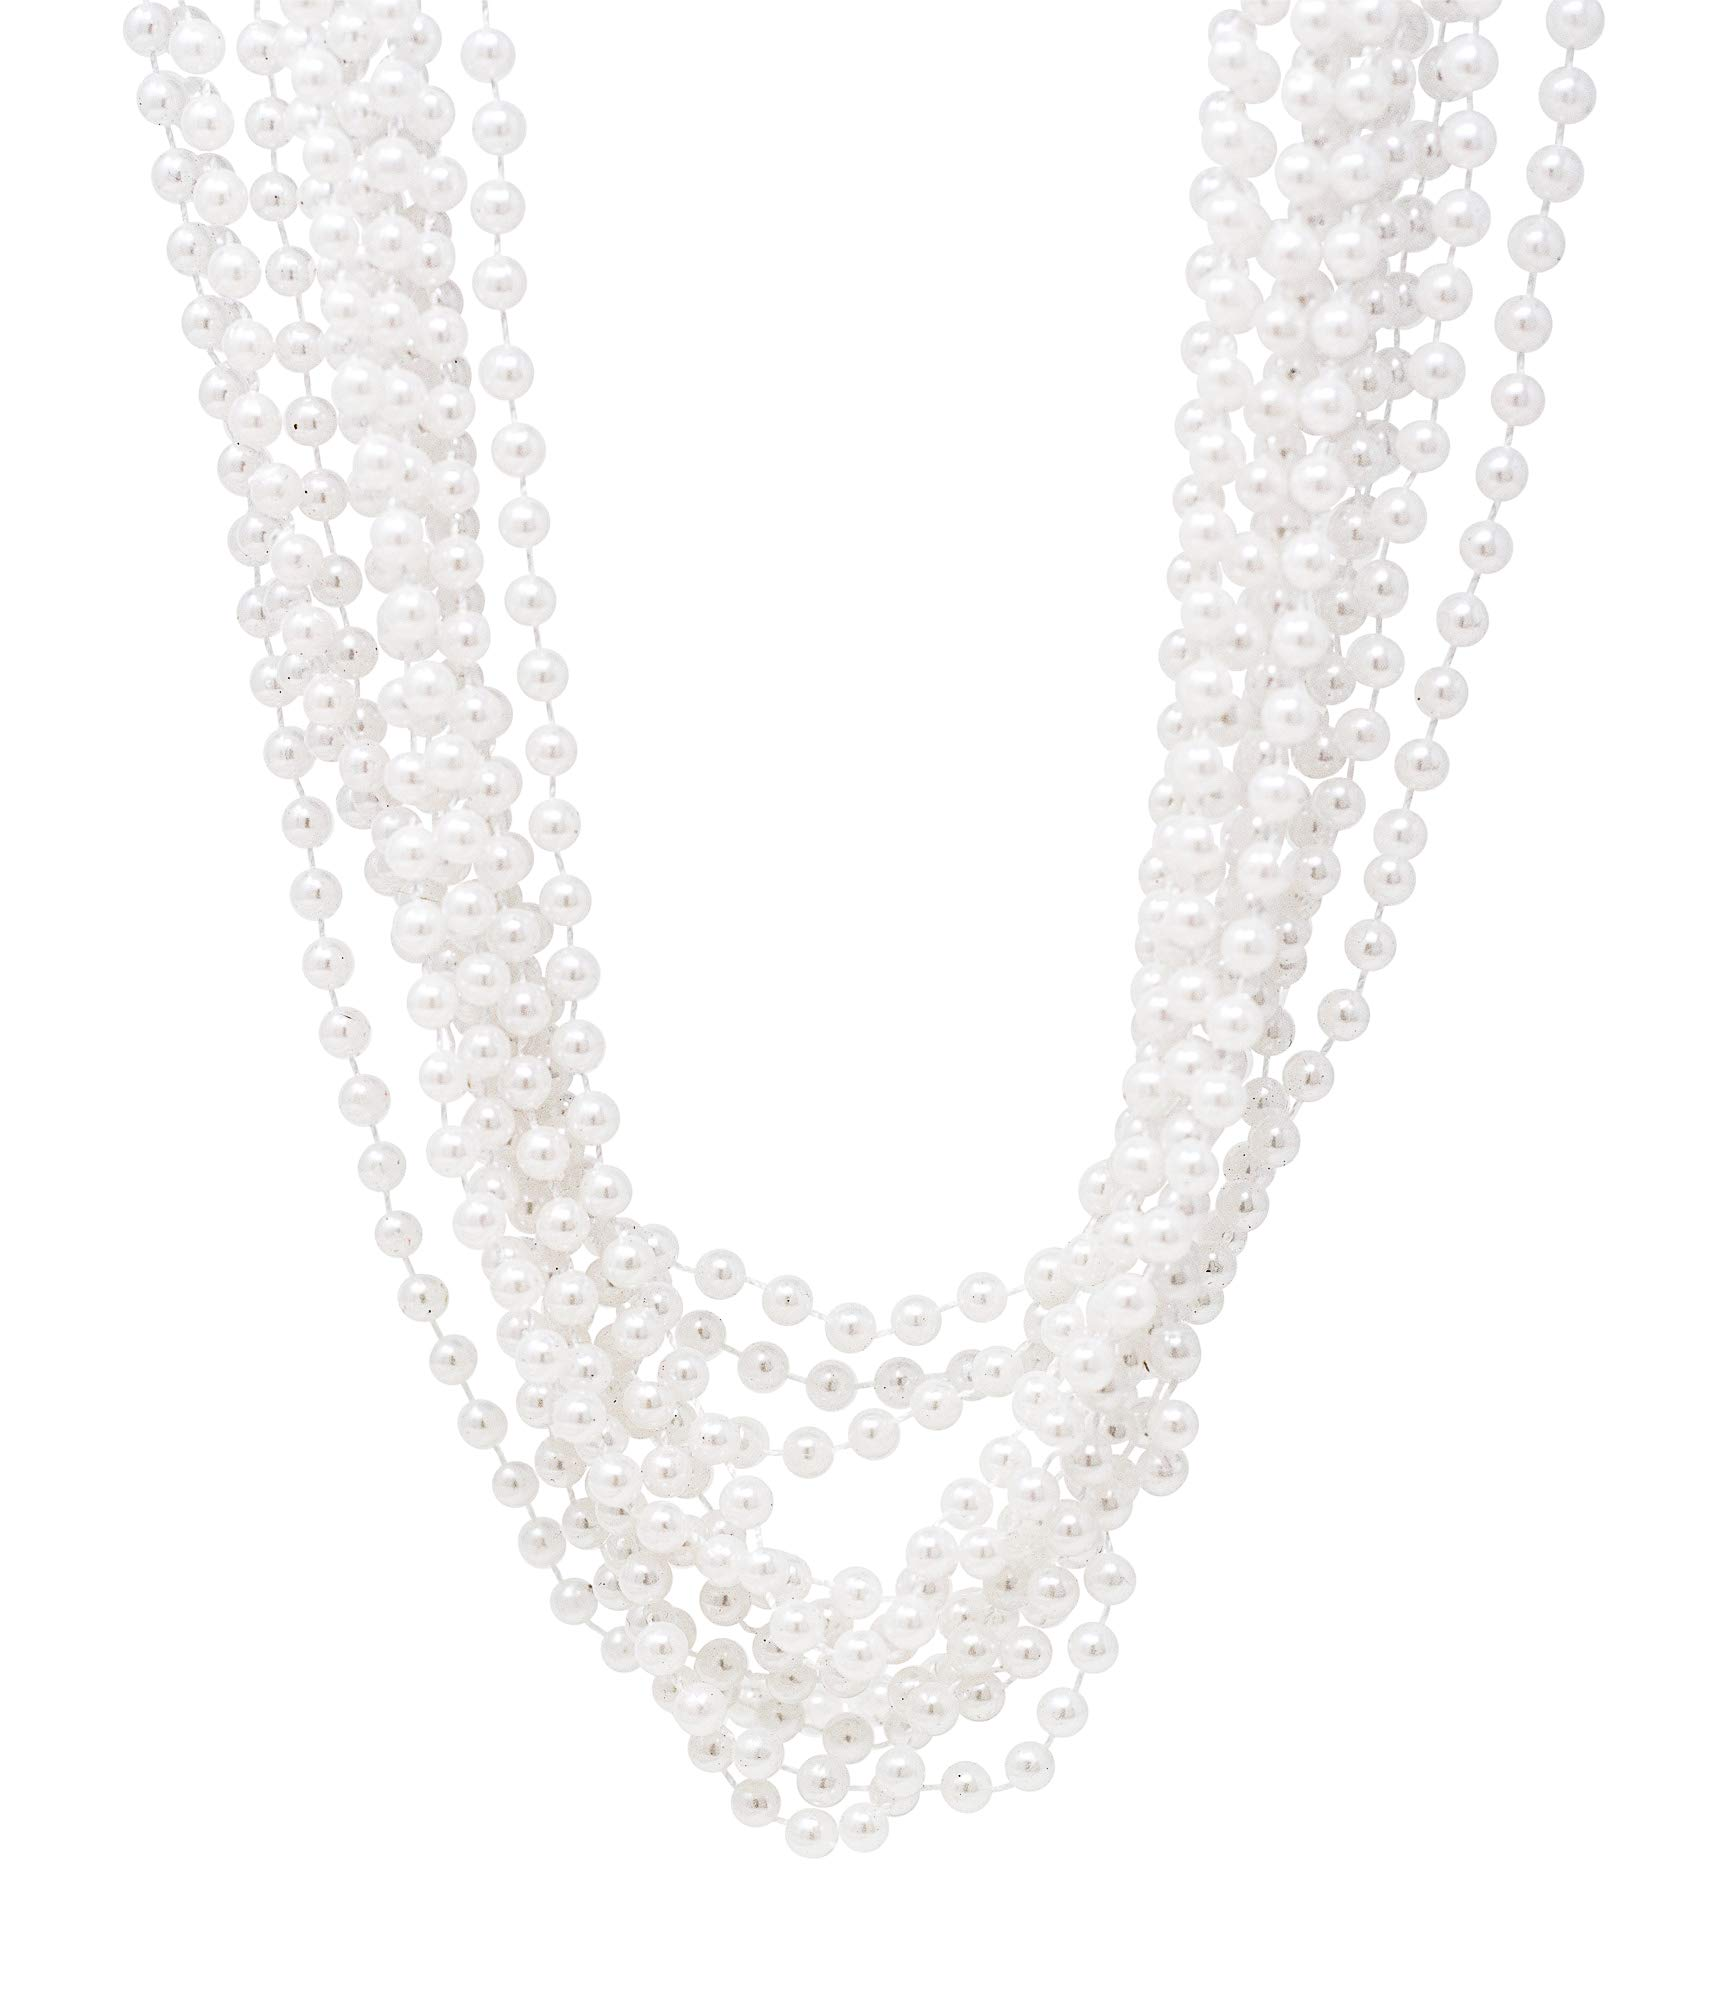 24 Pack Pearl Necklaces For Women - Realistic Looking Fake Pearl Necklace Costume Jewelry - Tea Party Favors & Great Gatsby Party Decorations - Each Necklace Includes 7mm Faux Pearls On 48'' Strand by Edgewood Toys